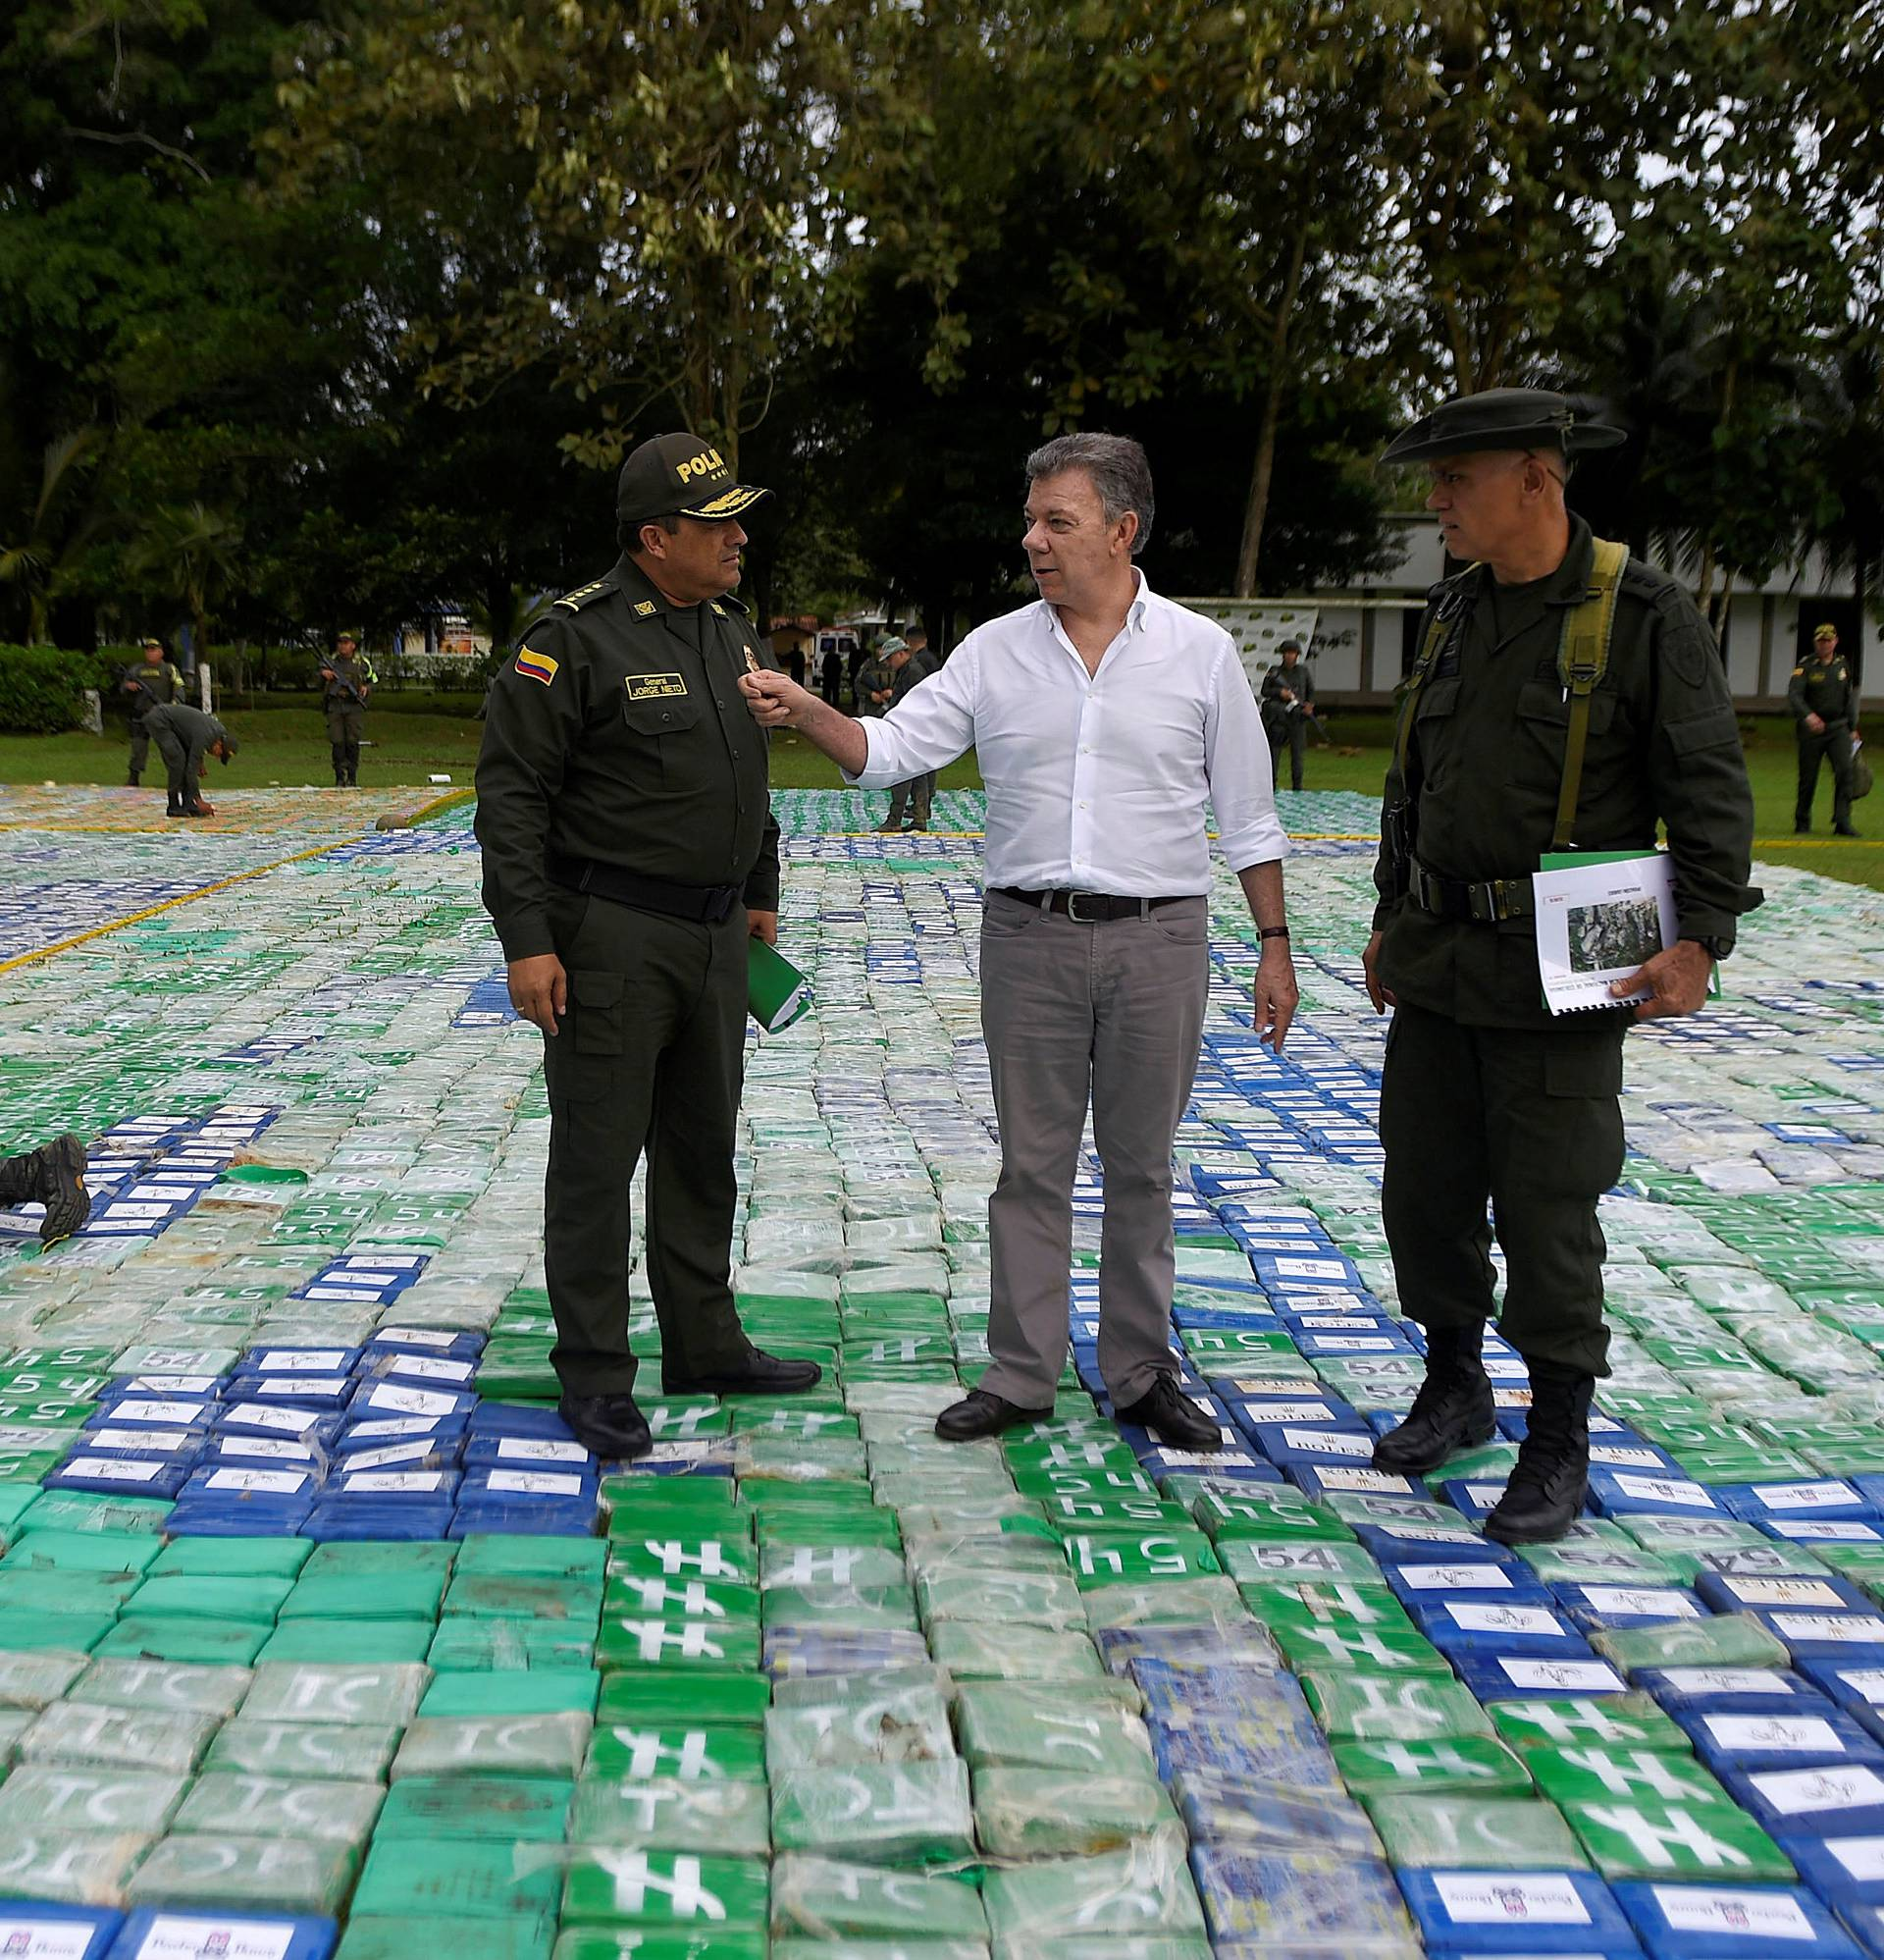 Colombia's President Juan Manuel Santos looks on after the seizure of more than 12 tons of cocaine in Apartado, Colombia